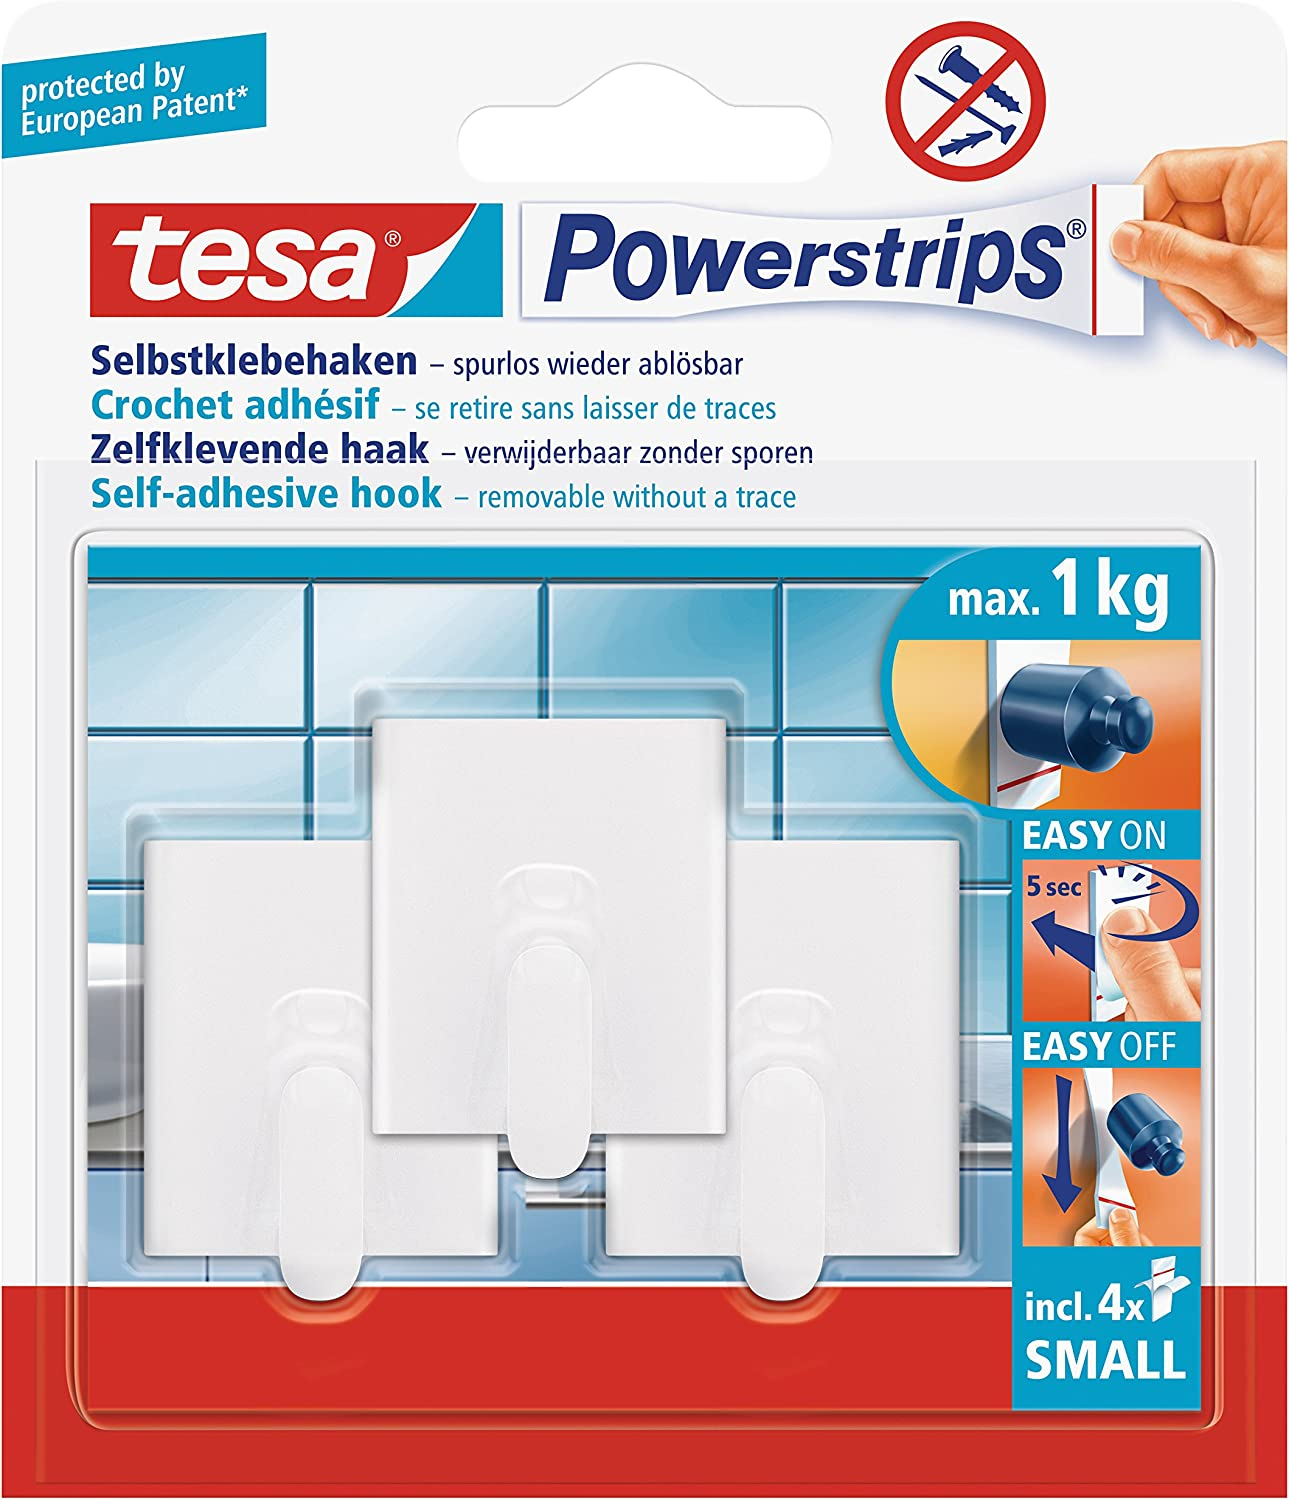 4 Mini Languettes Chrome Tesa 57540-00012-00 Powerstrips 3 mini crochets rectangulaires